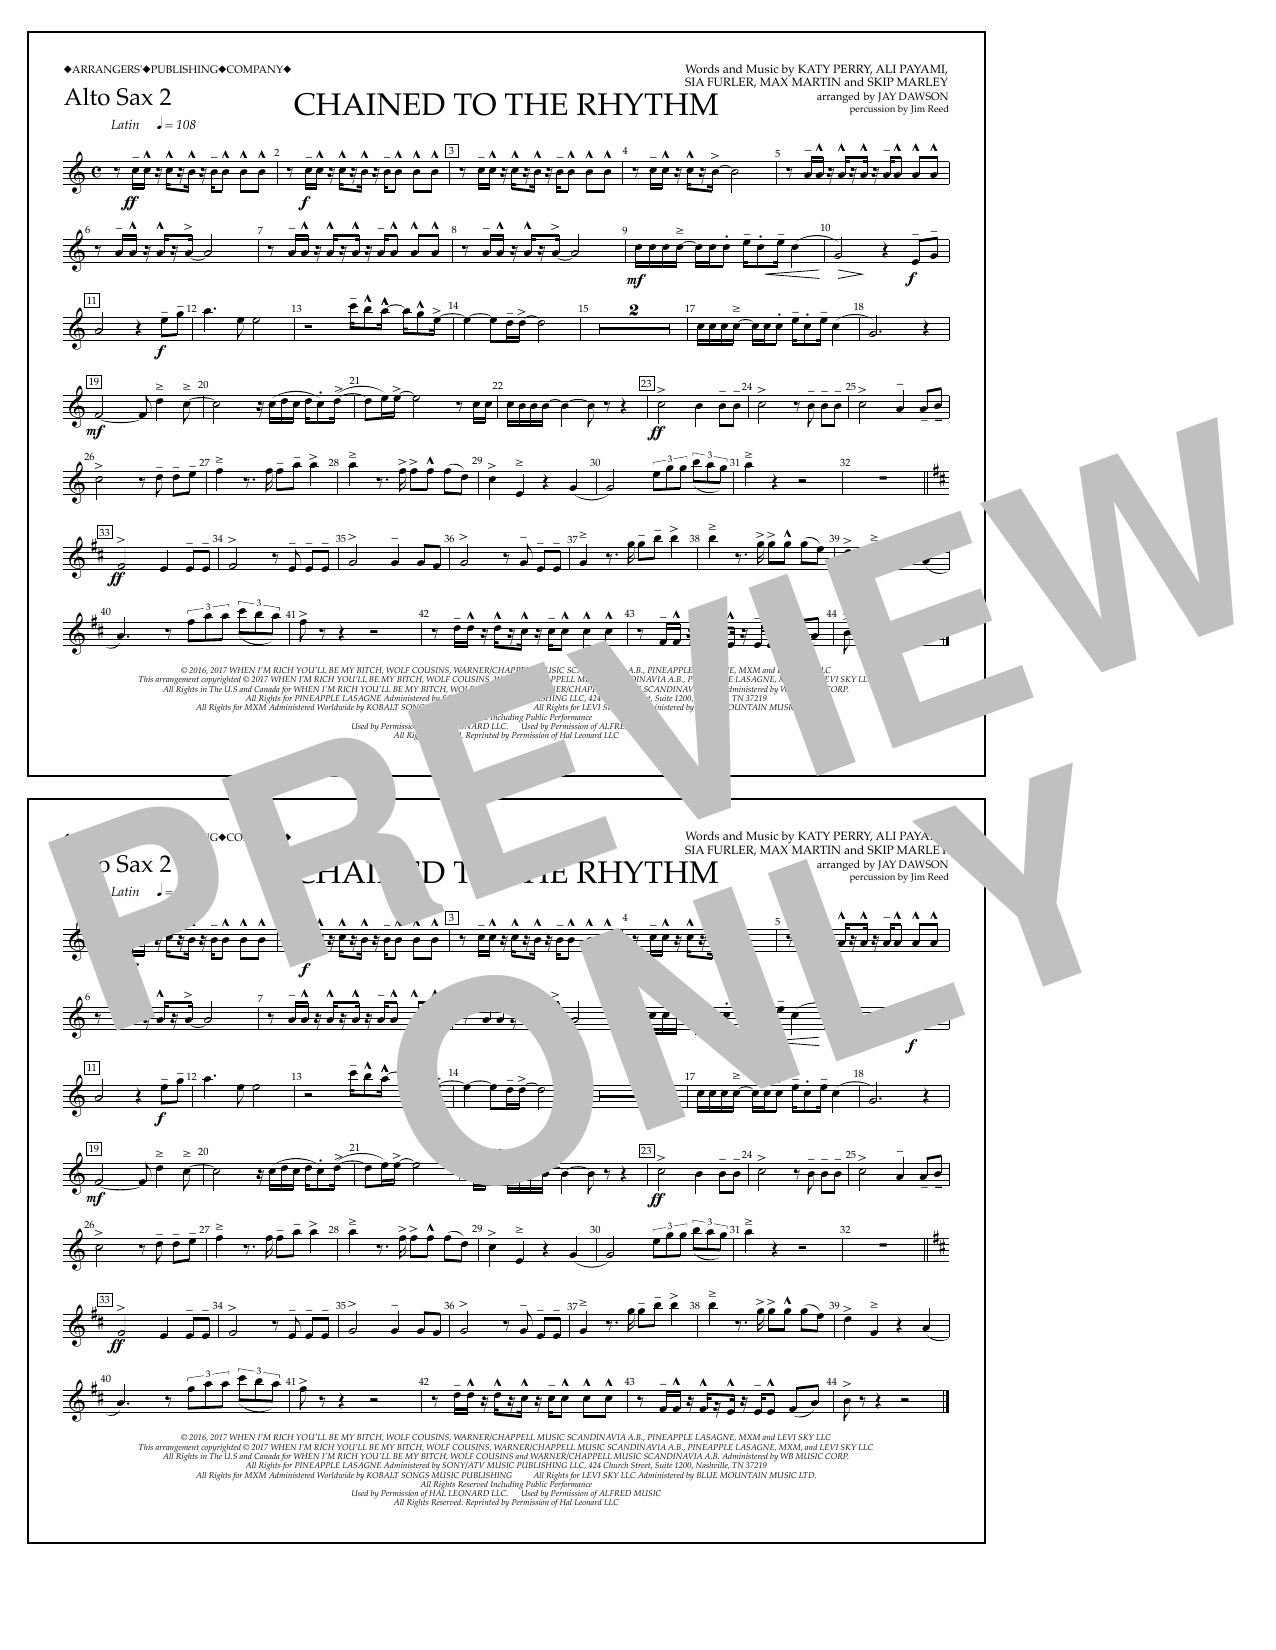 Chained to the Rhythm - Alto Sax 2 Sheet Music